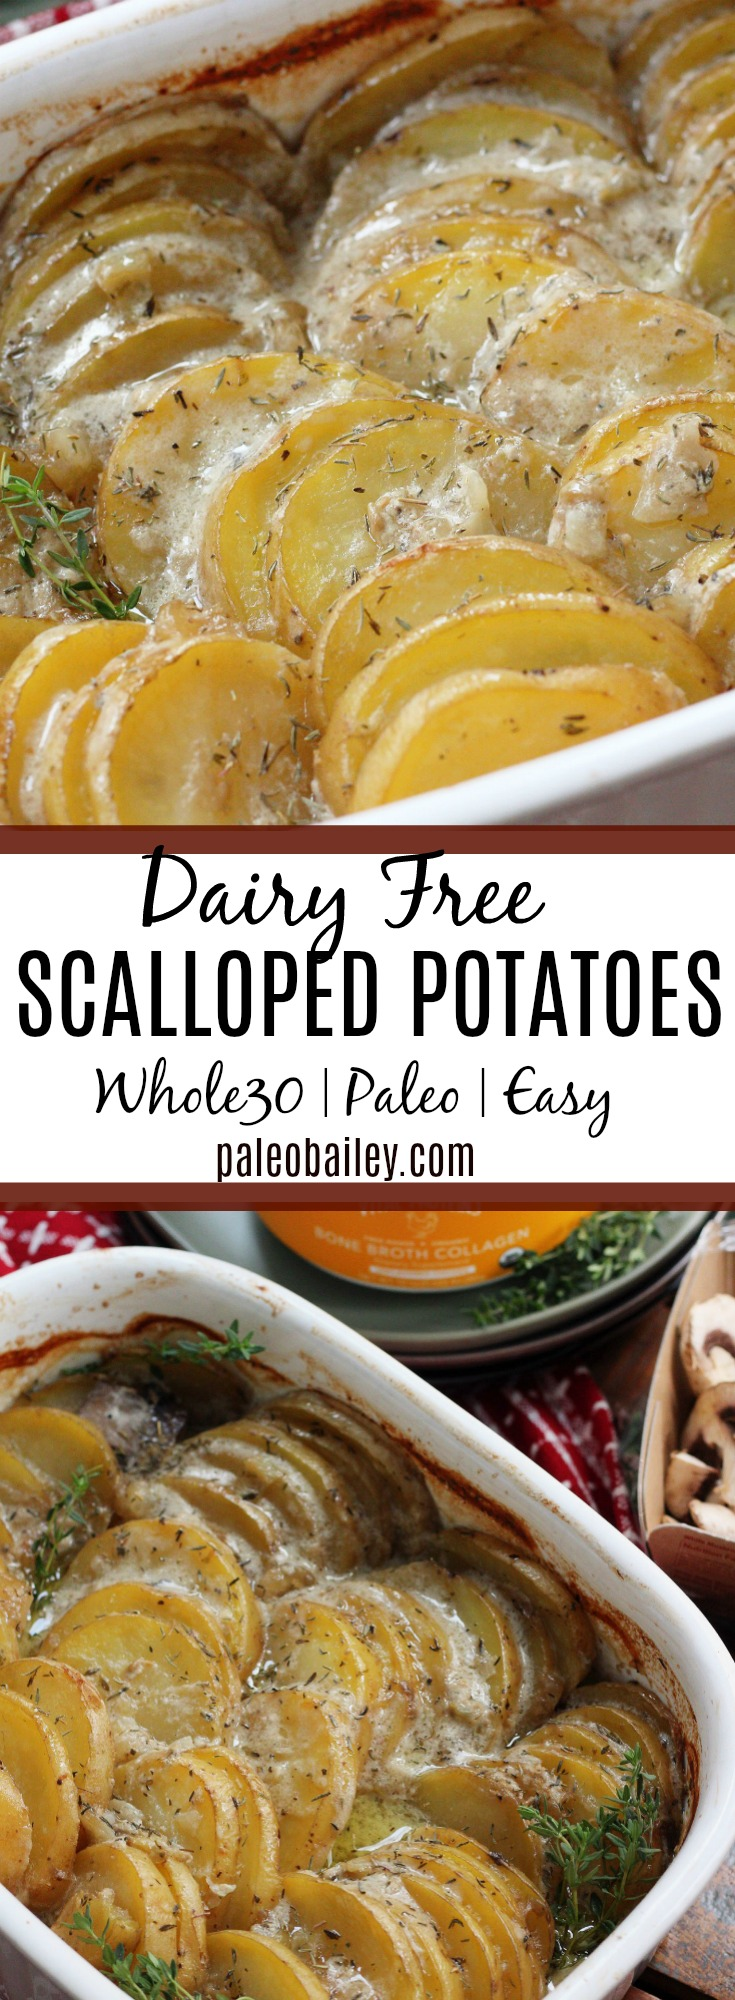 Dairy Free Creamy Scalloped Potatoes are the perfect side dish for any occasion. Everyone in the family will love them! #paleo #whole30 #whole30sidedish #scallopedpotatoes #paleoscallopedpotatoes